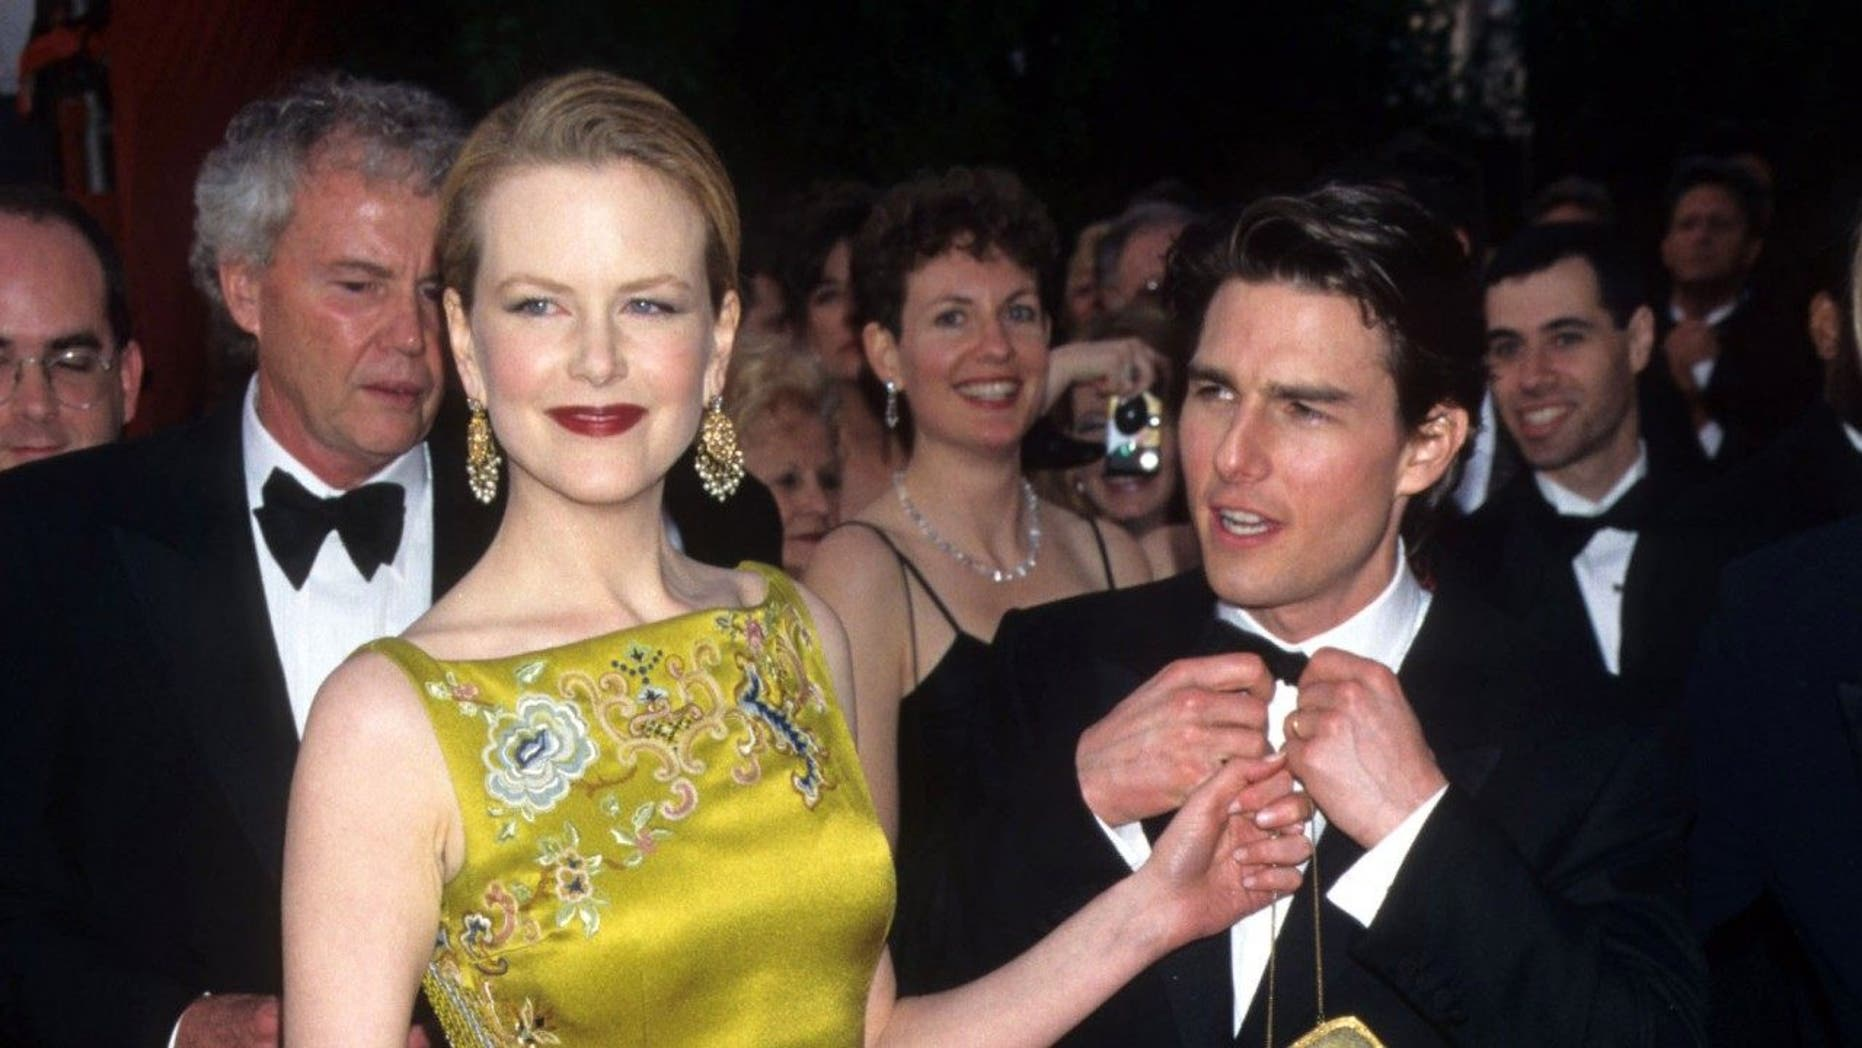 1e130c1547f Nicole Kidman looked back on her relationship with Tom Cruise in an  interview with Variety published